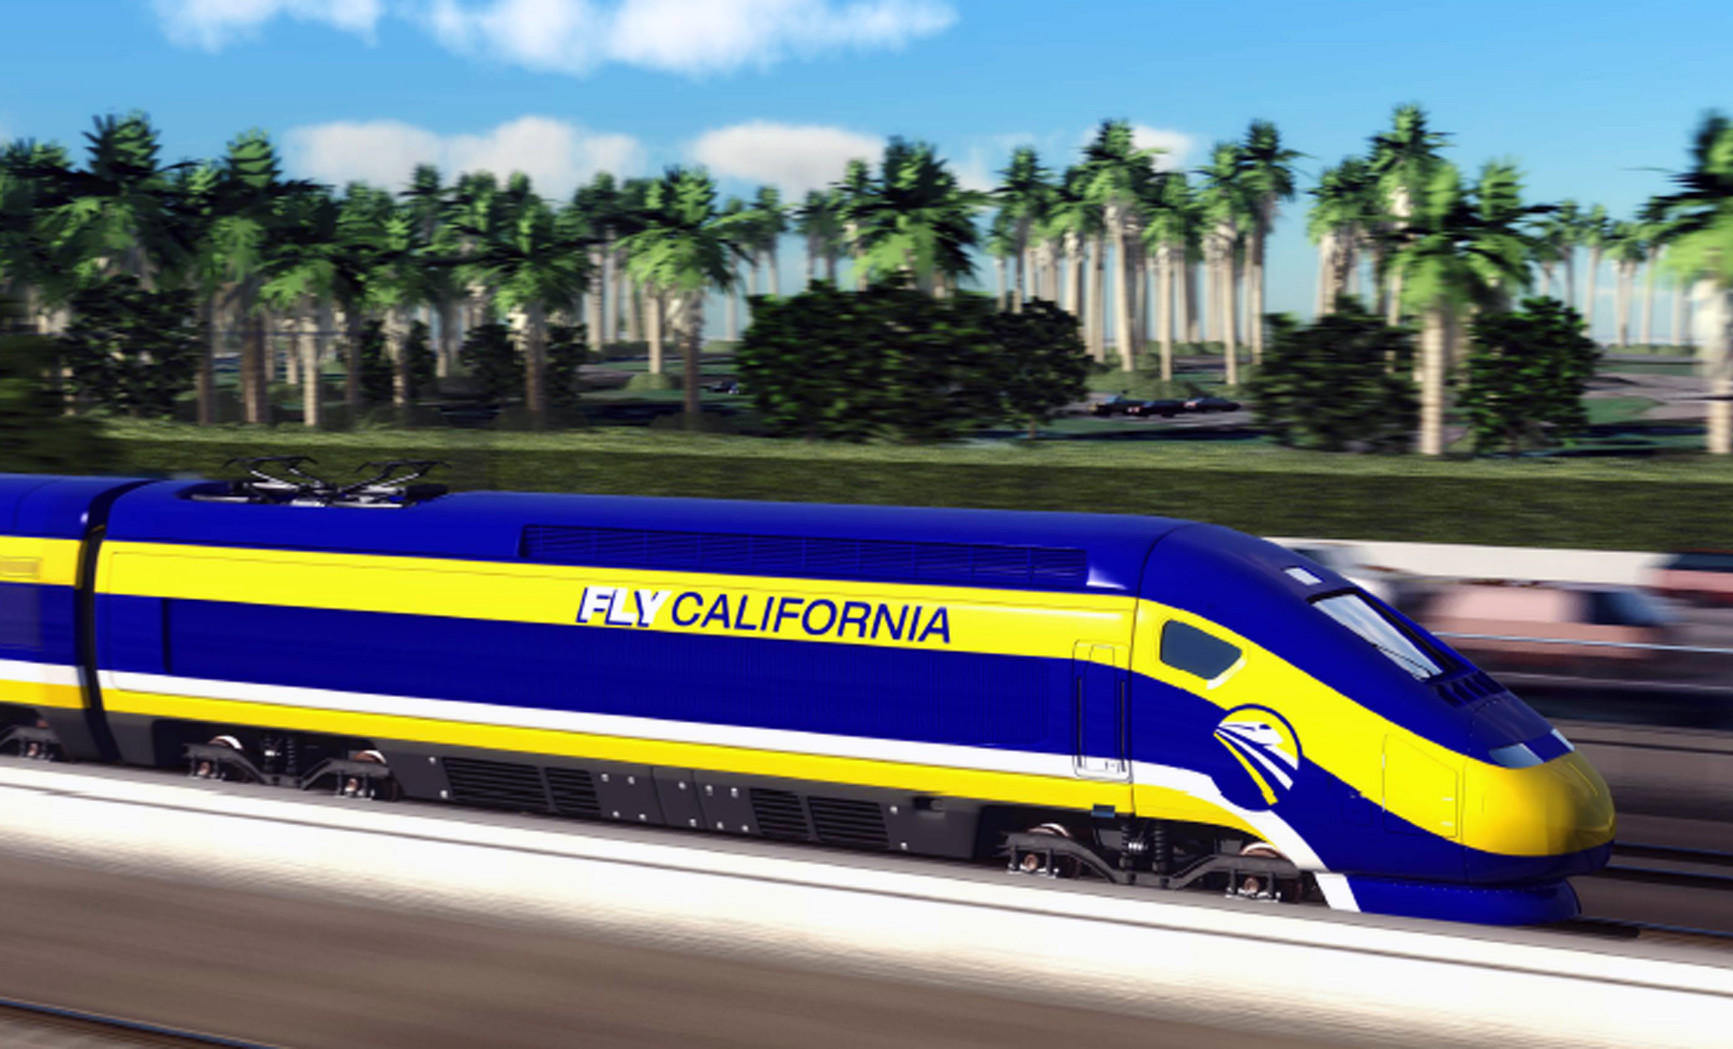 This image provided by the California High-Speed Rail Authority shows an artist's conception of a high-speed rail car in California. Up to 59% in a late 2012 USC Dornsife/Los Angeles Times poll said they would turn down high-speed rail, given the chance at a redo.